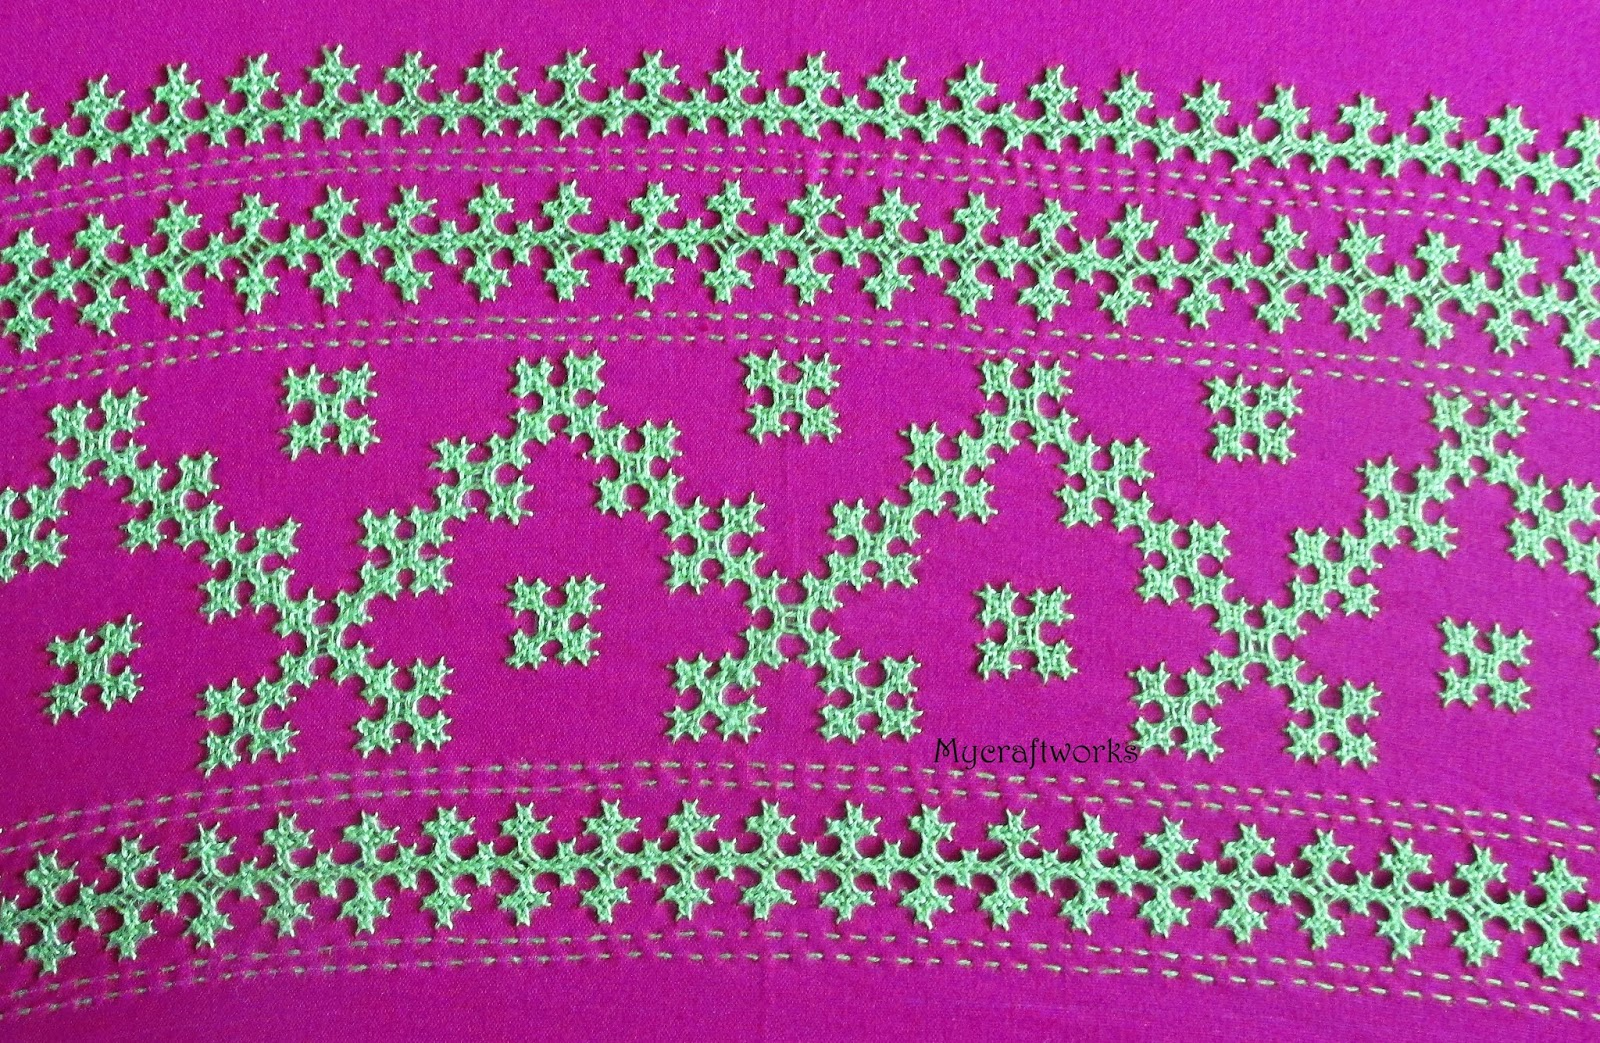 My Craft Works Embroidery Design 7 Kutch Work Border